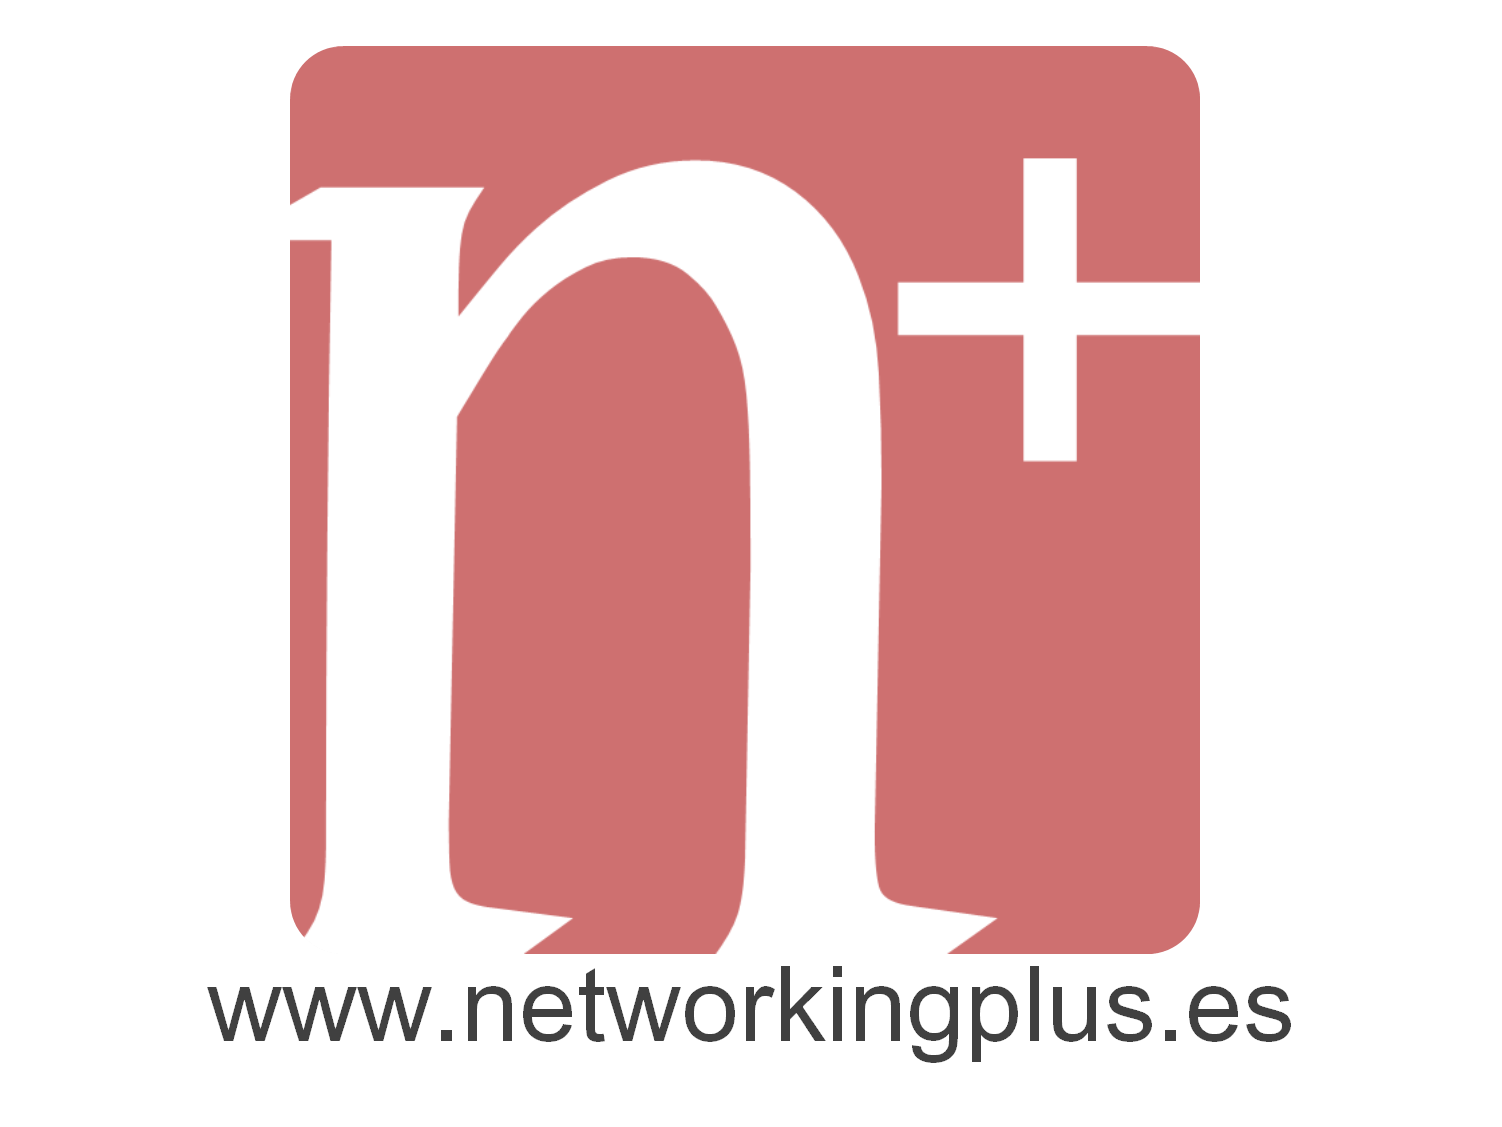 http://networkingplus.es